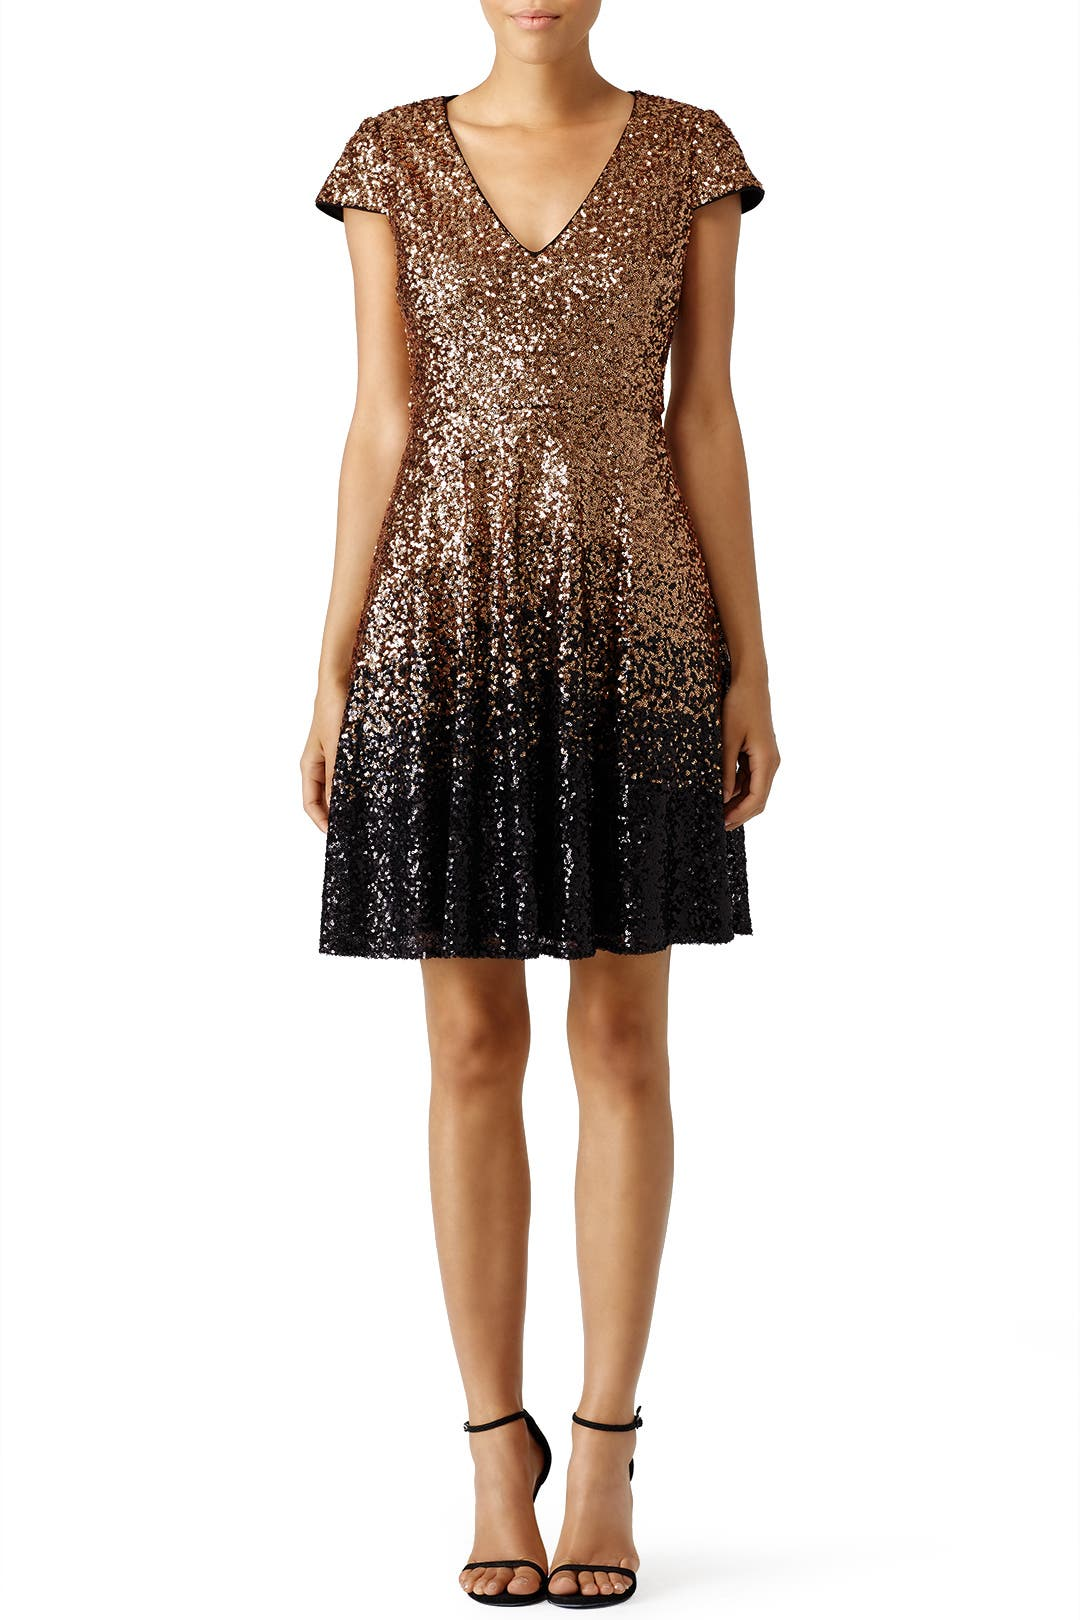 Ombre Natasha Dress By Badgley Mischka For 55 85